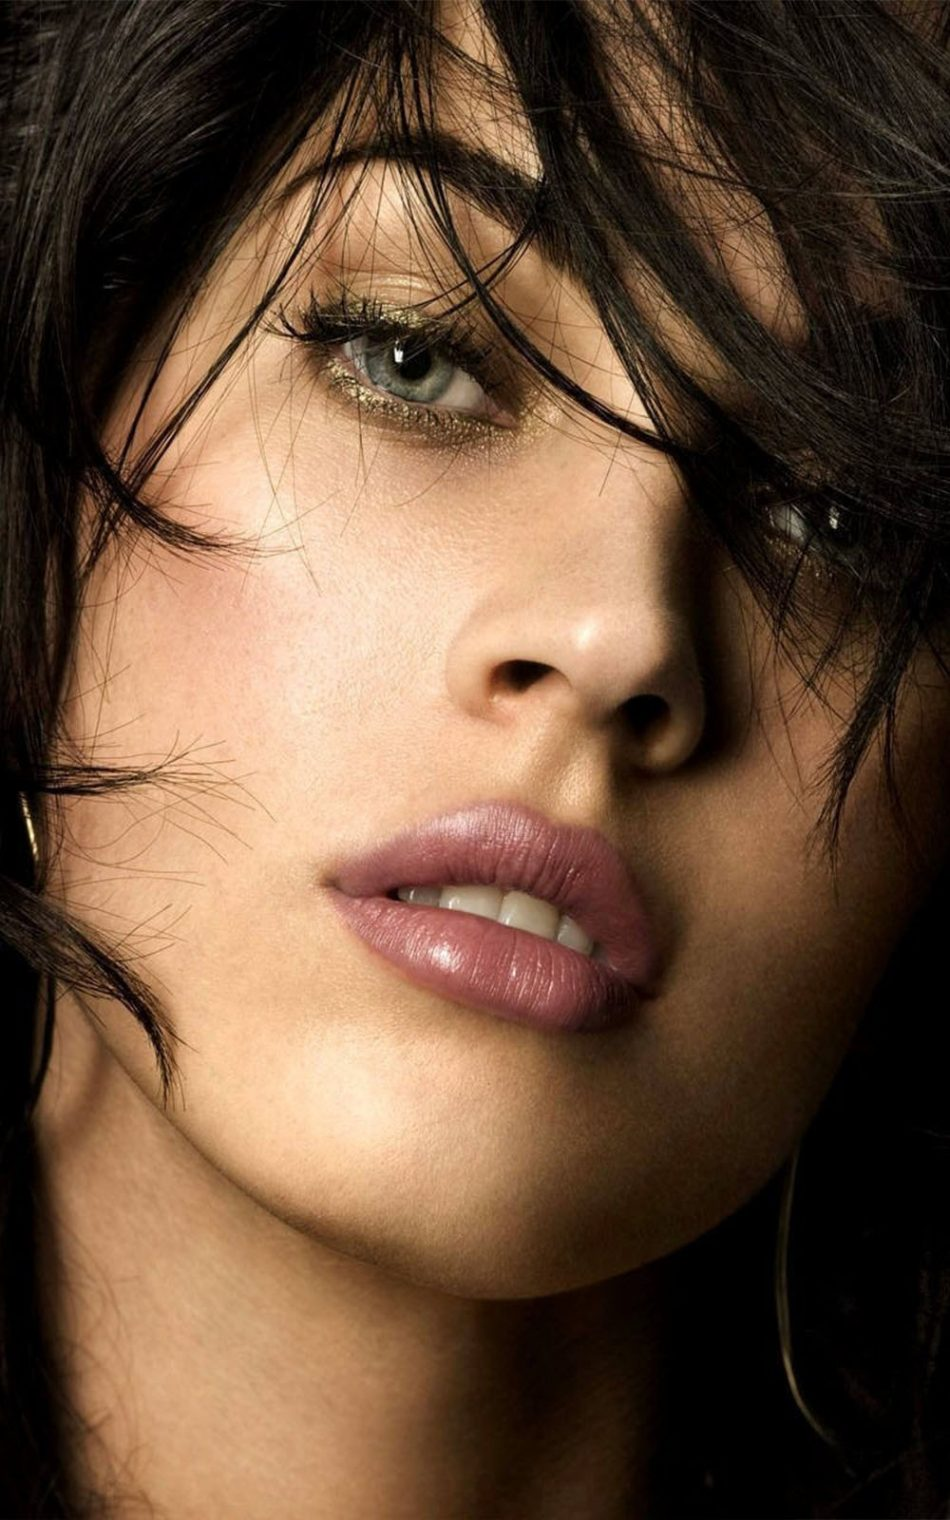 megan fox close photo click - download free 100% pure hd quality